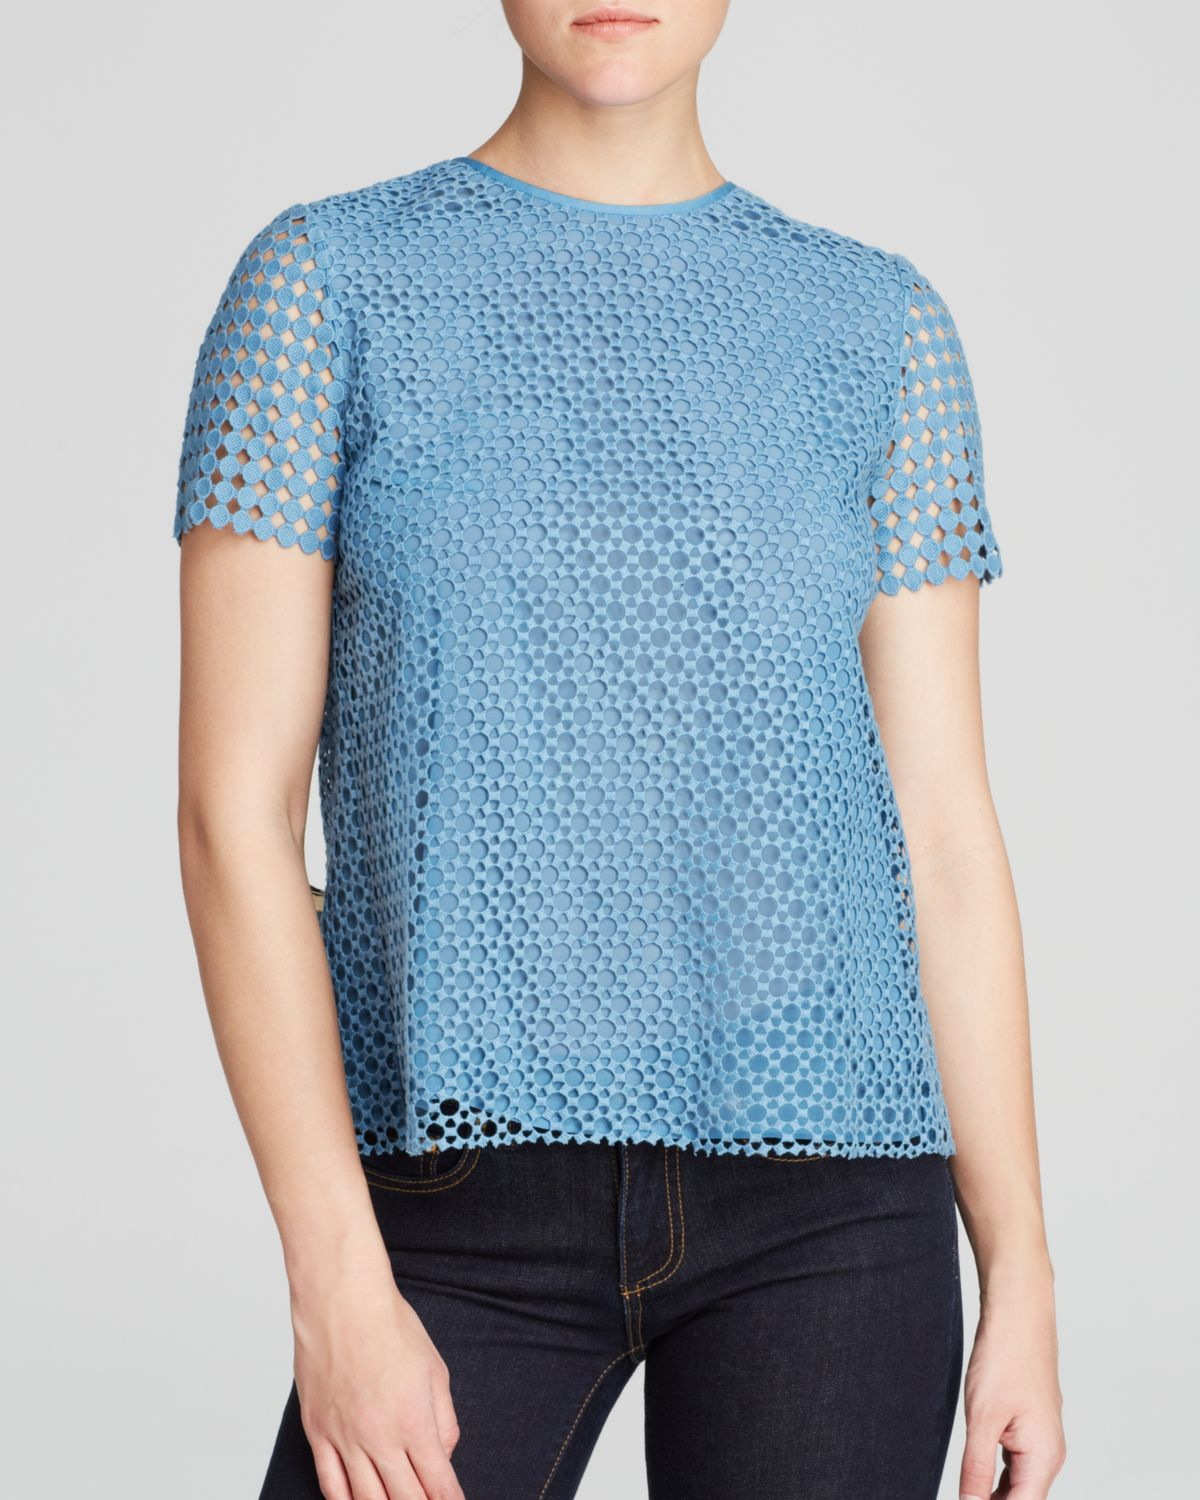 Tory burch crescent guipure tee in blue gulf shore lyst for Tory burch fashion island